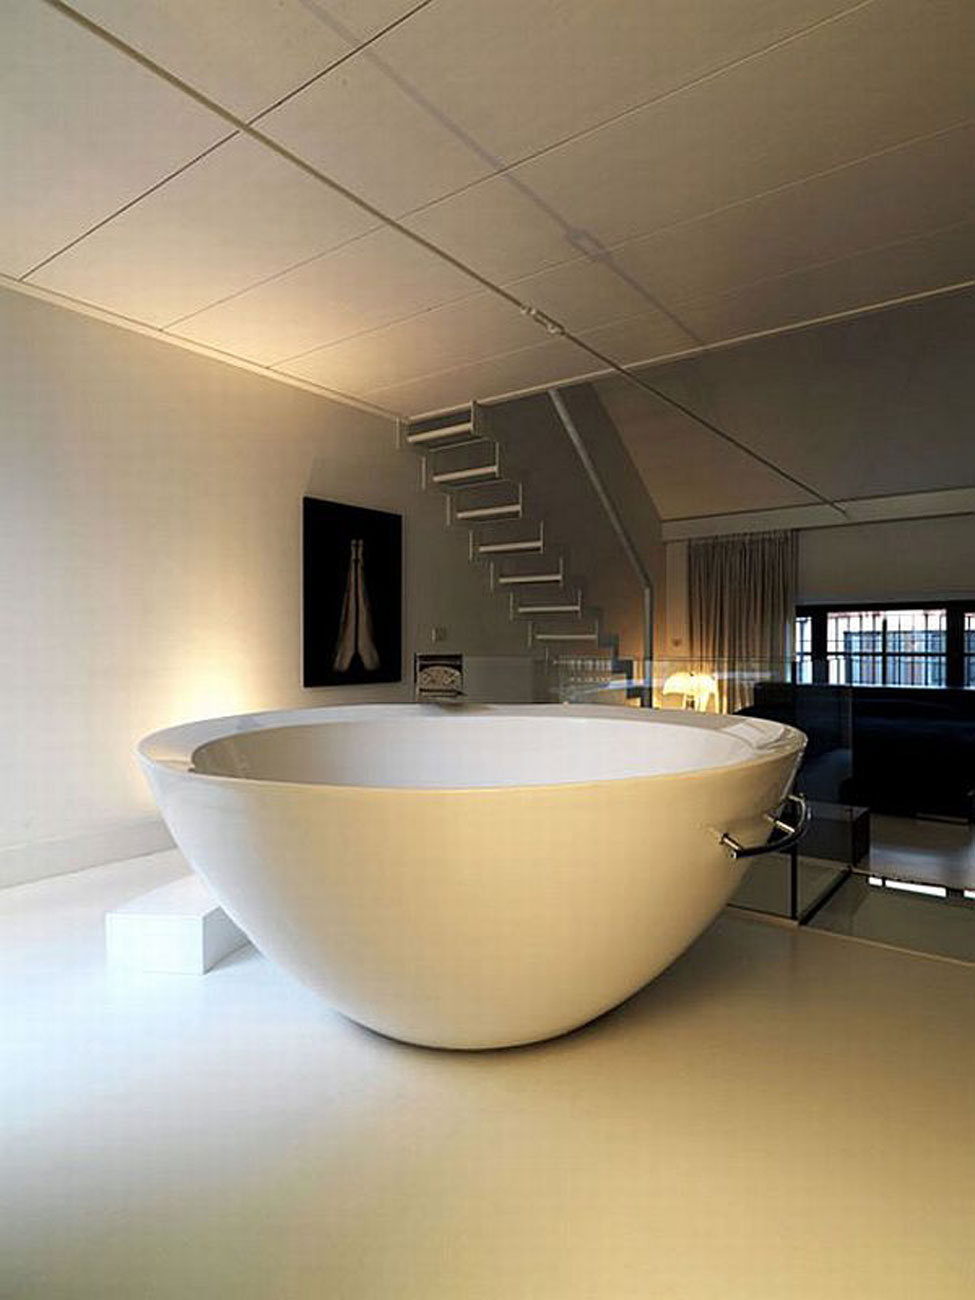 Renovated Industrial Factory into Minimalist Home Design with Spa and Gym - Big Bathtub